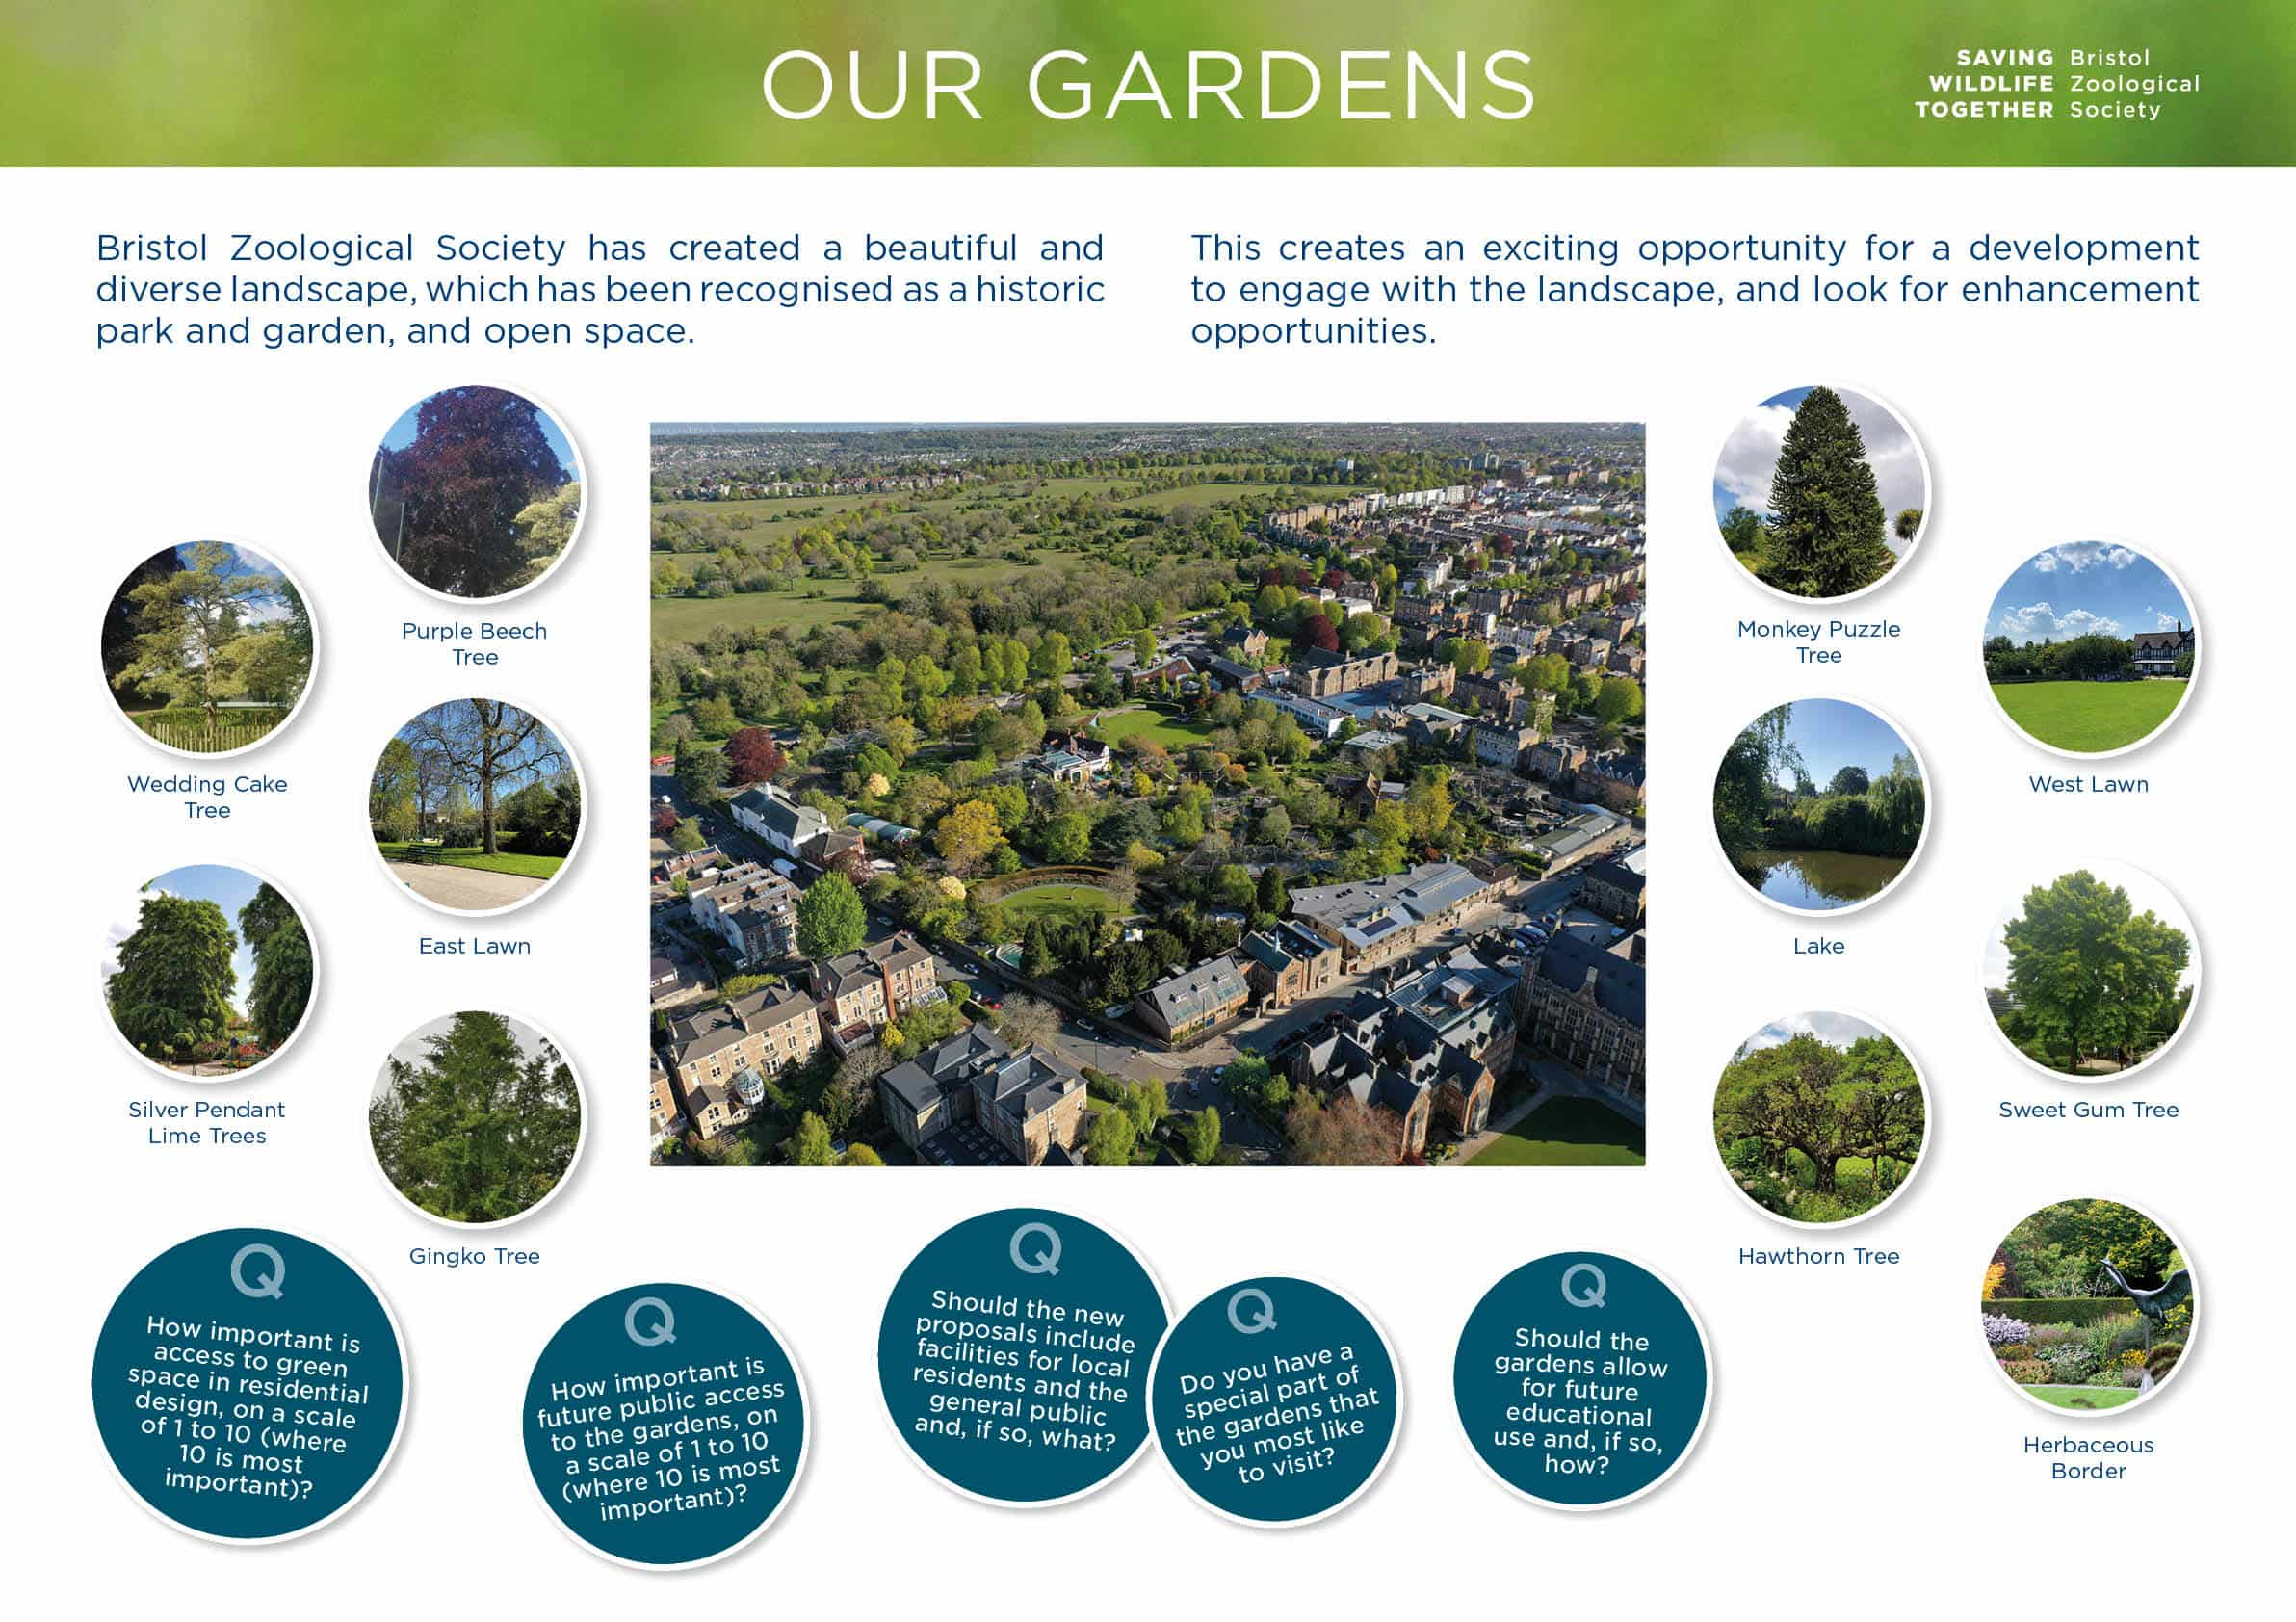 Moodboard with aerial photograph of Bristol Zoo Gardens and images of trees, lawns, lake and Herbaceous Border